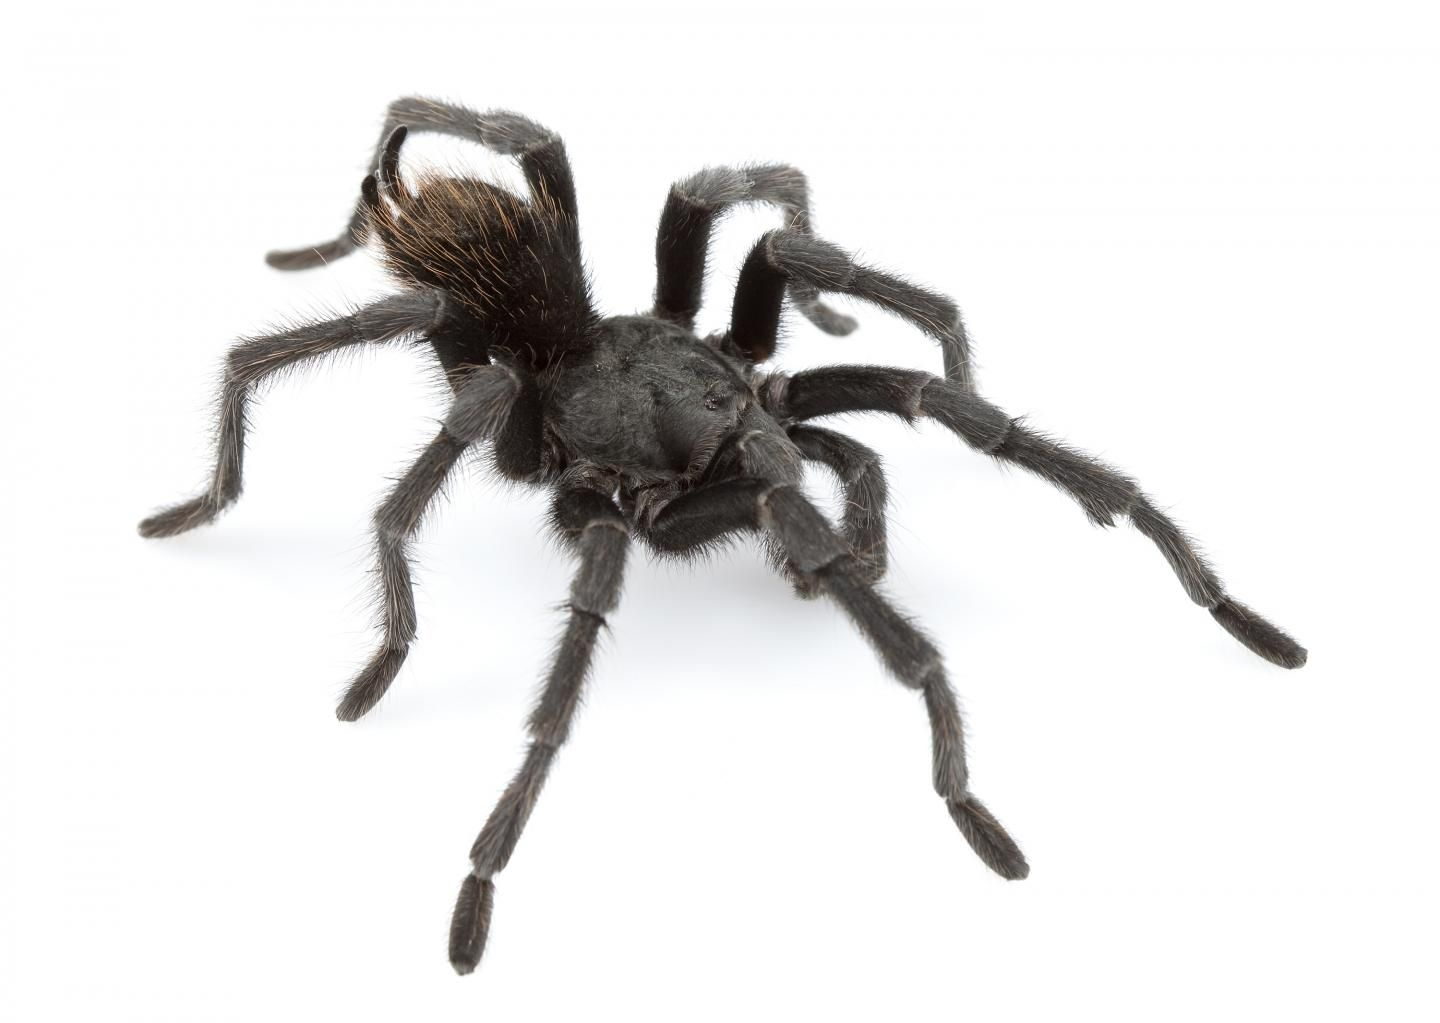 14 New Tarantula Species Found in United States